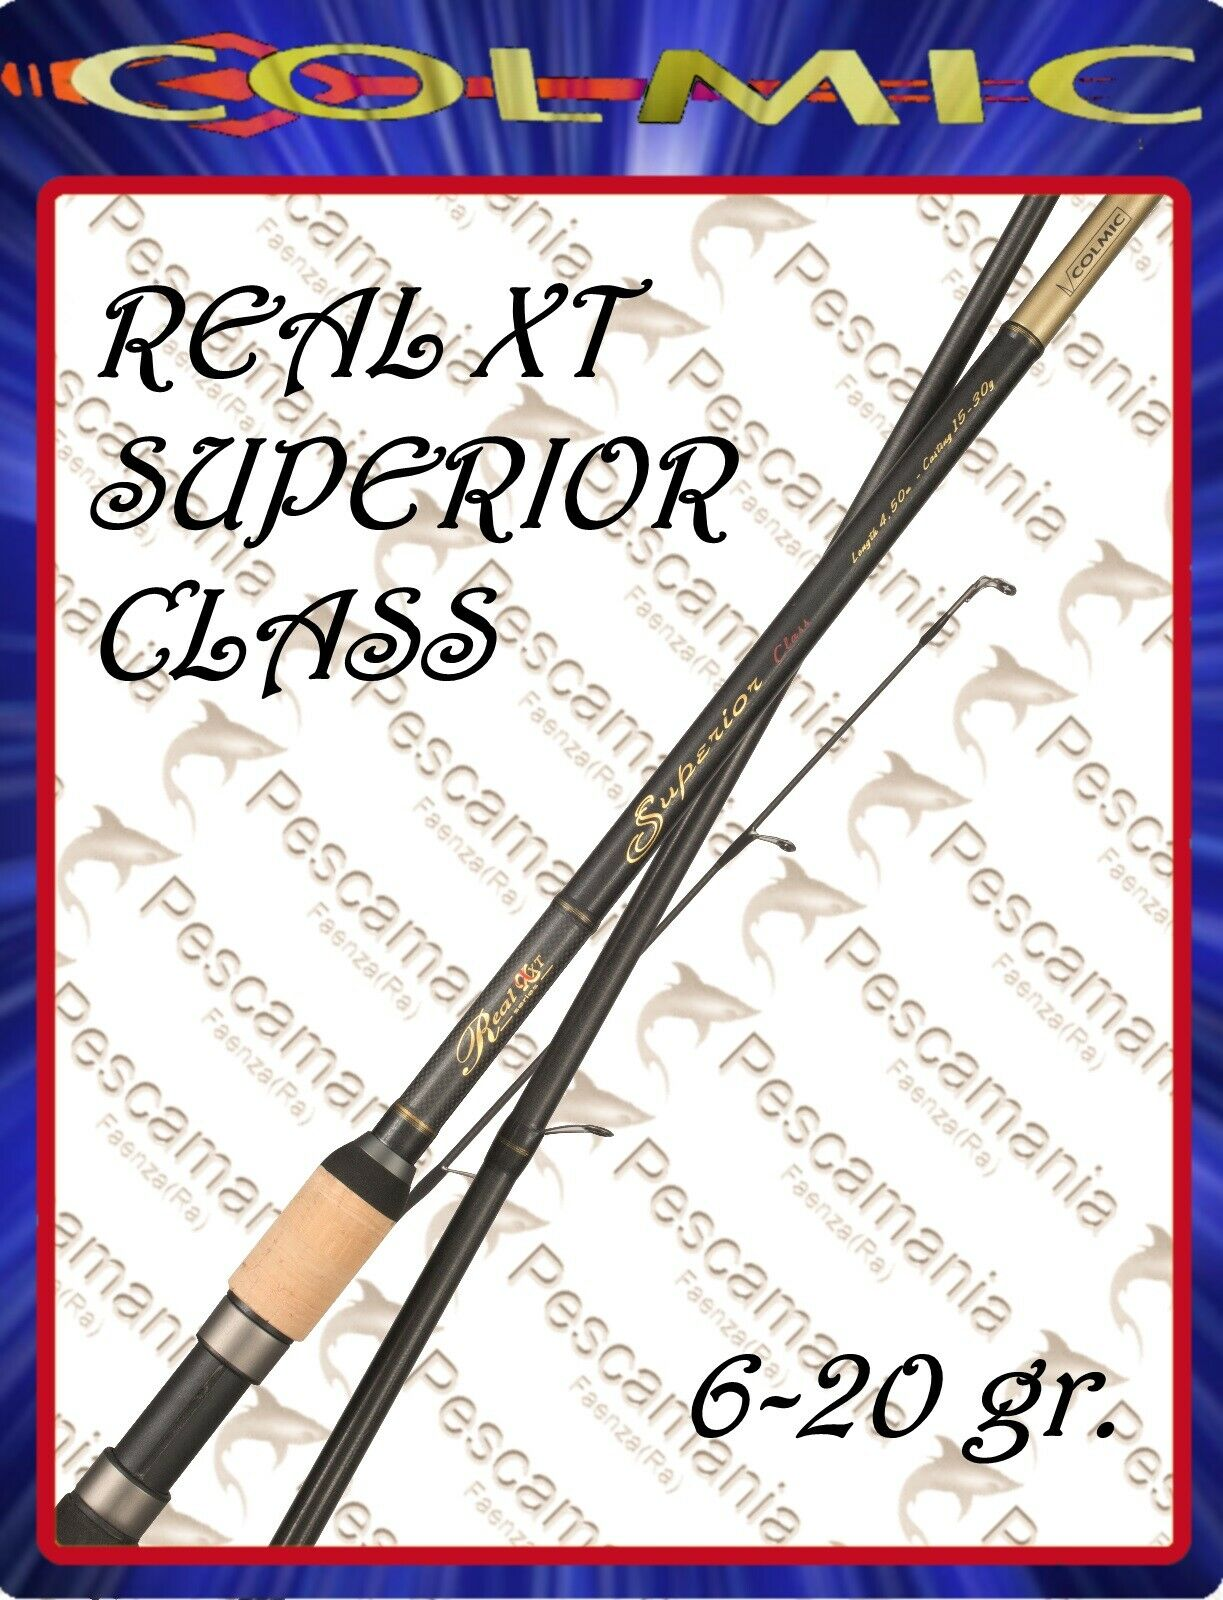 Canna inglese Colmic REAL XT Superior Class 6-20gr. 4,20-4,50mt